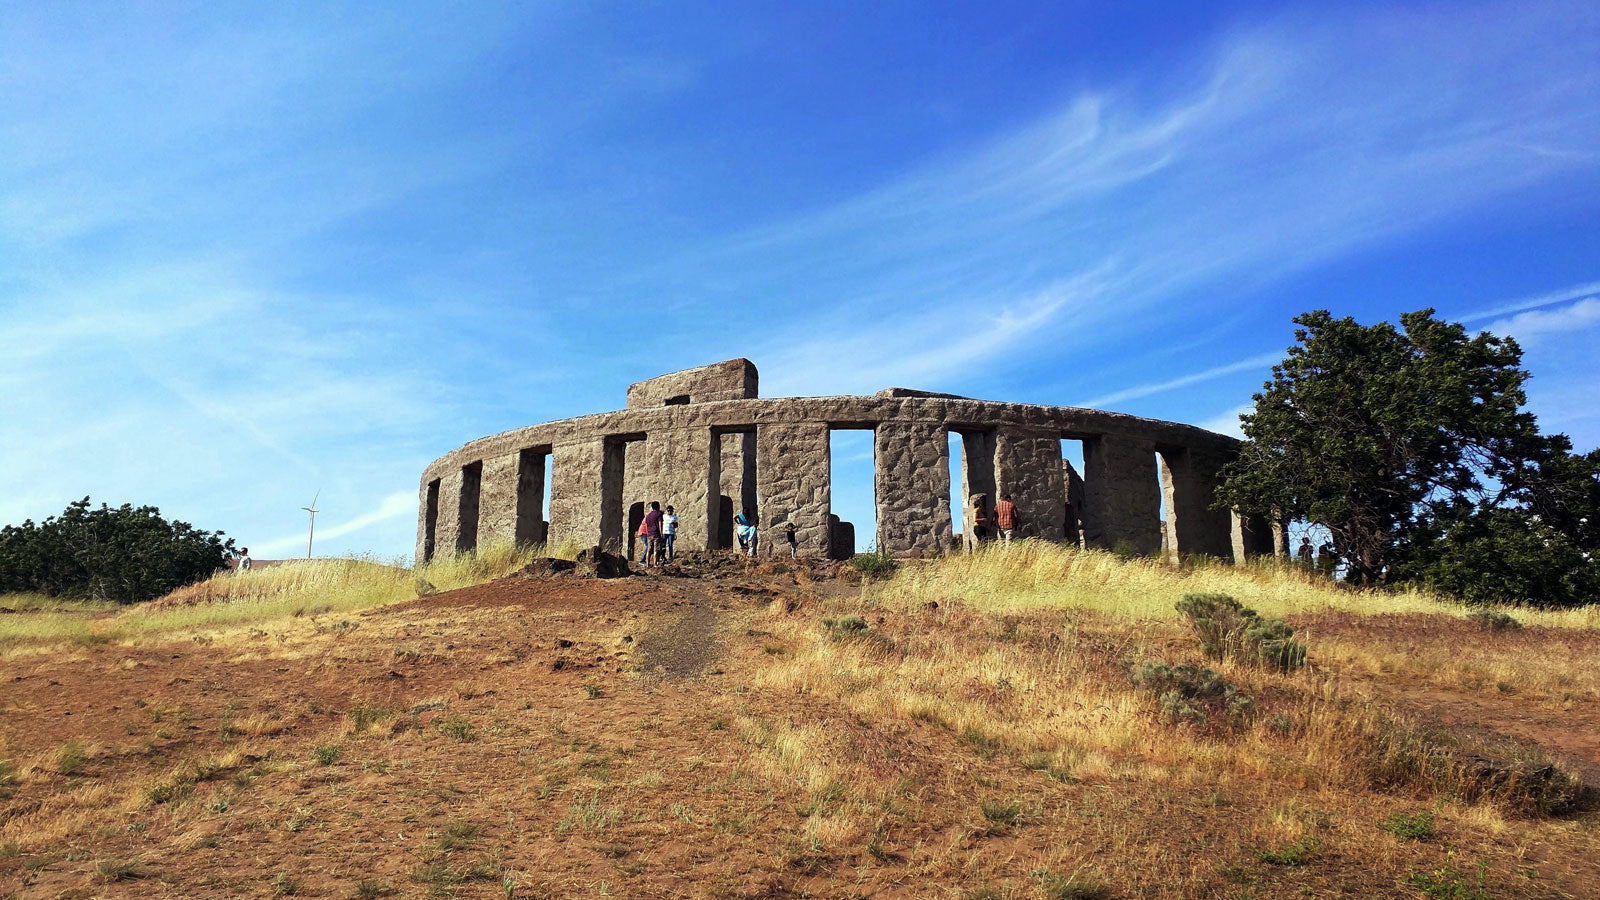 Six Little Known Attractions in Washington State - Maryhill Stonehenge